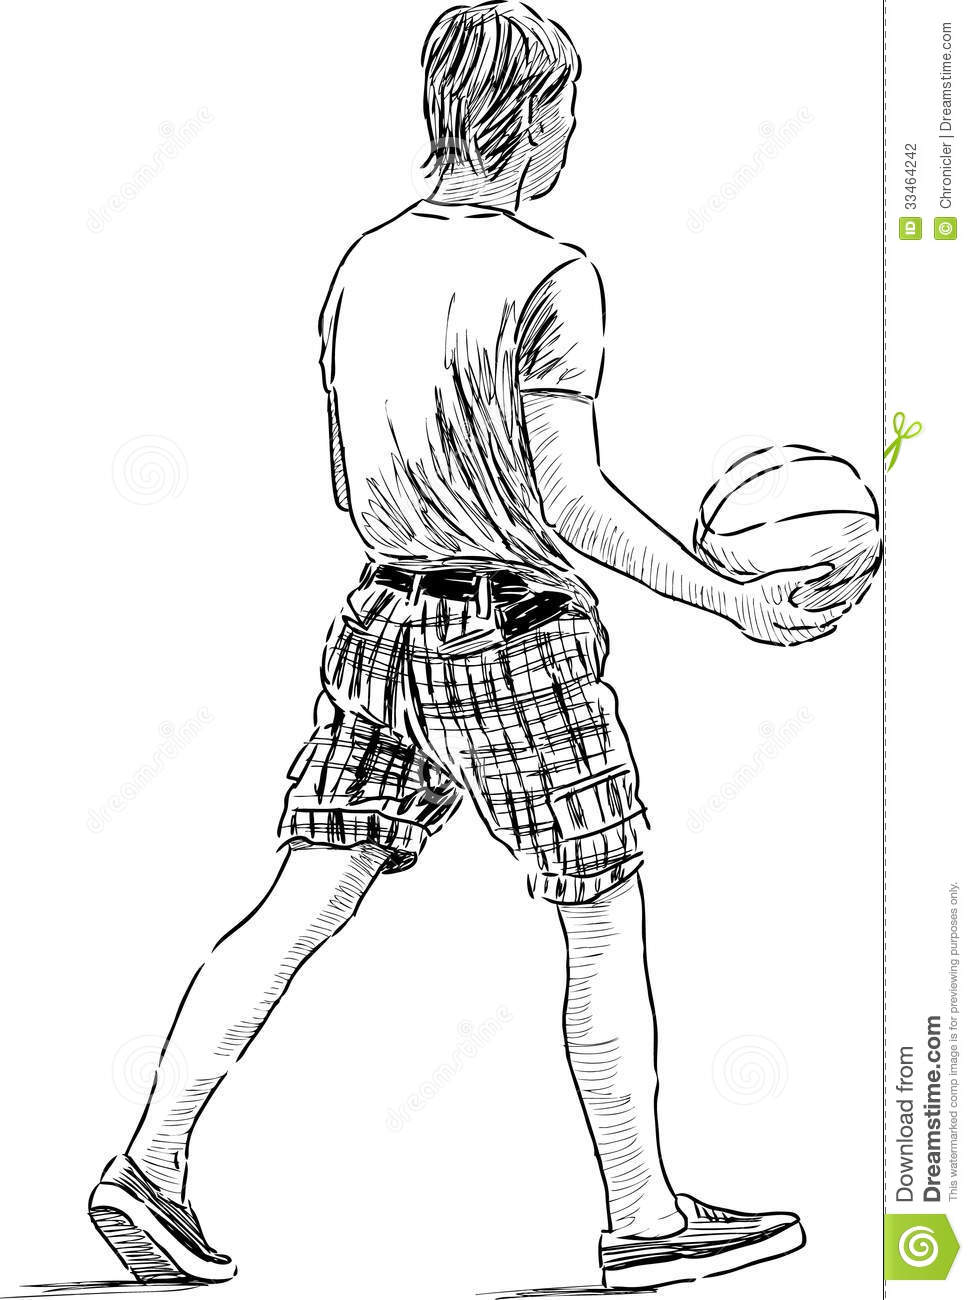 Young Man With The Ball Stock Photography - Image: 33464242